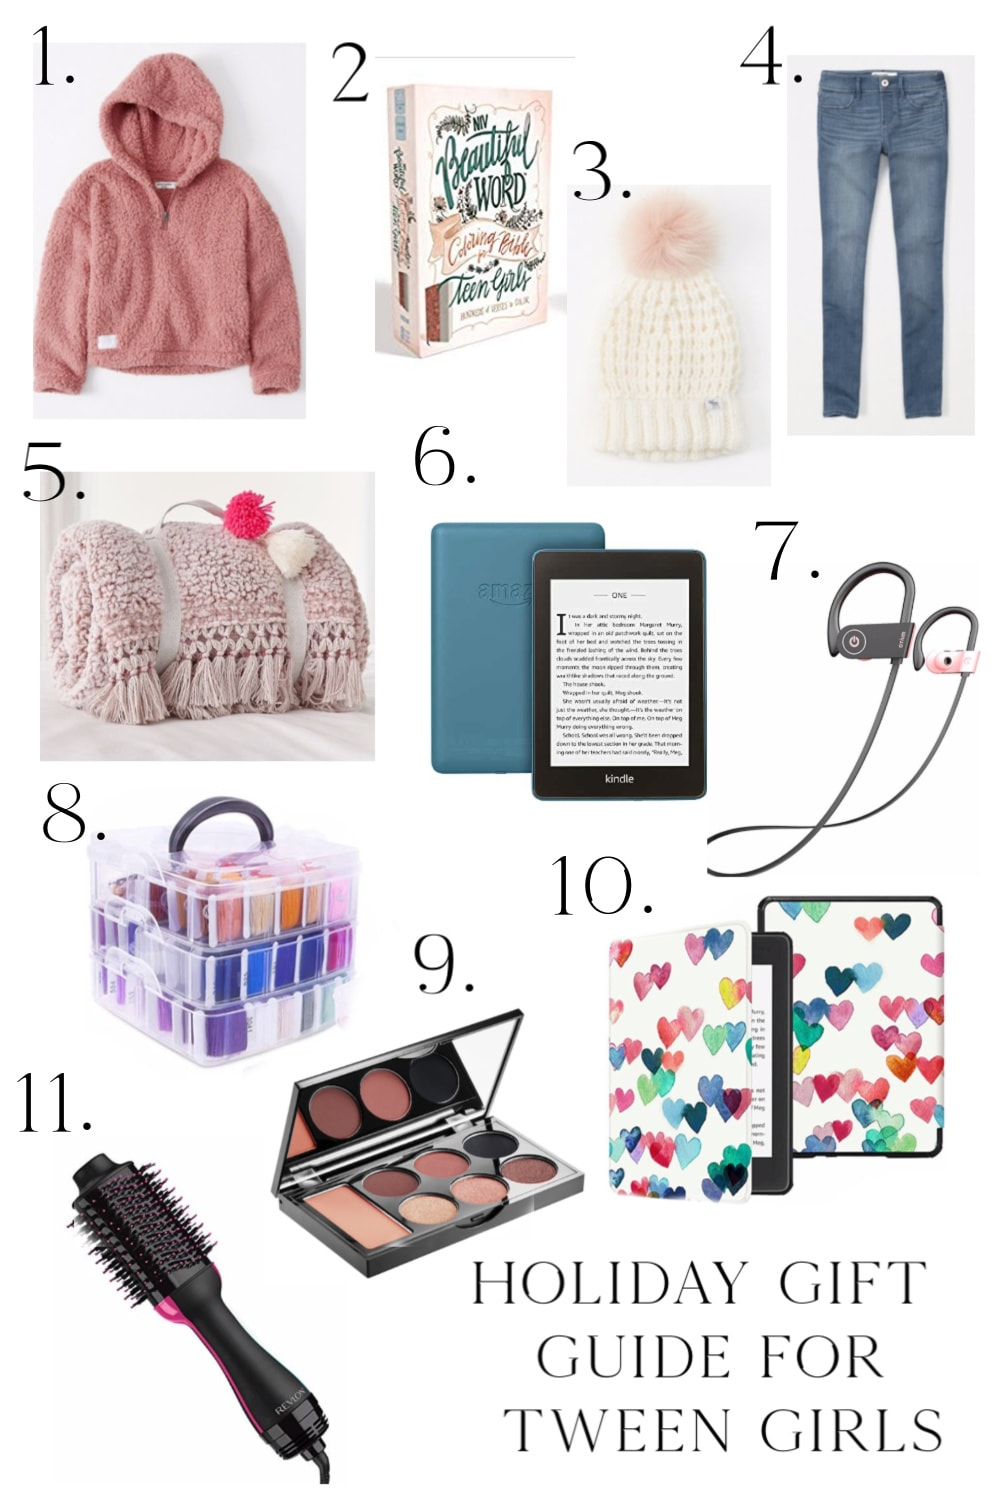 Gift Guides for Everyone - Men, Tweens, and Kids - The Lilypad Cottage